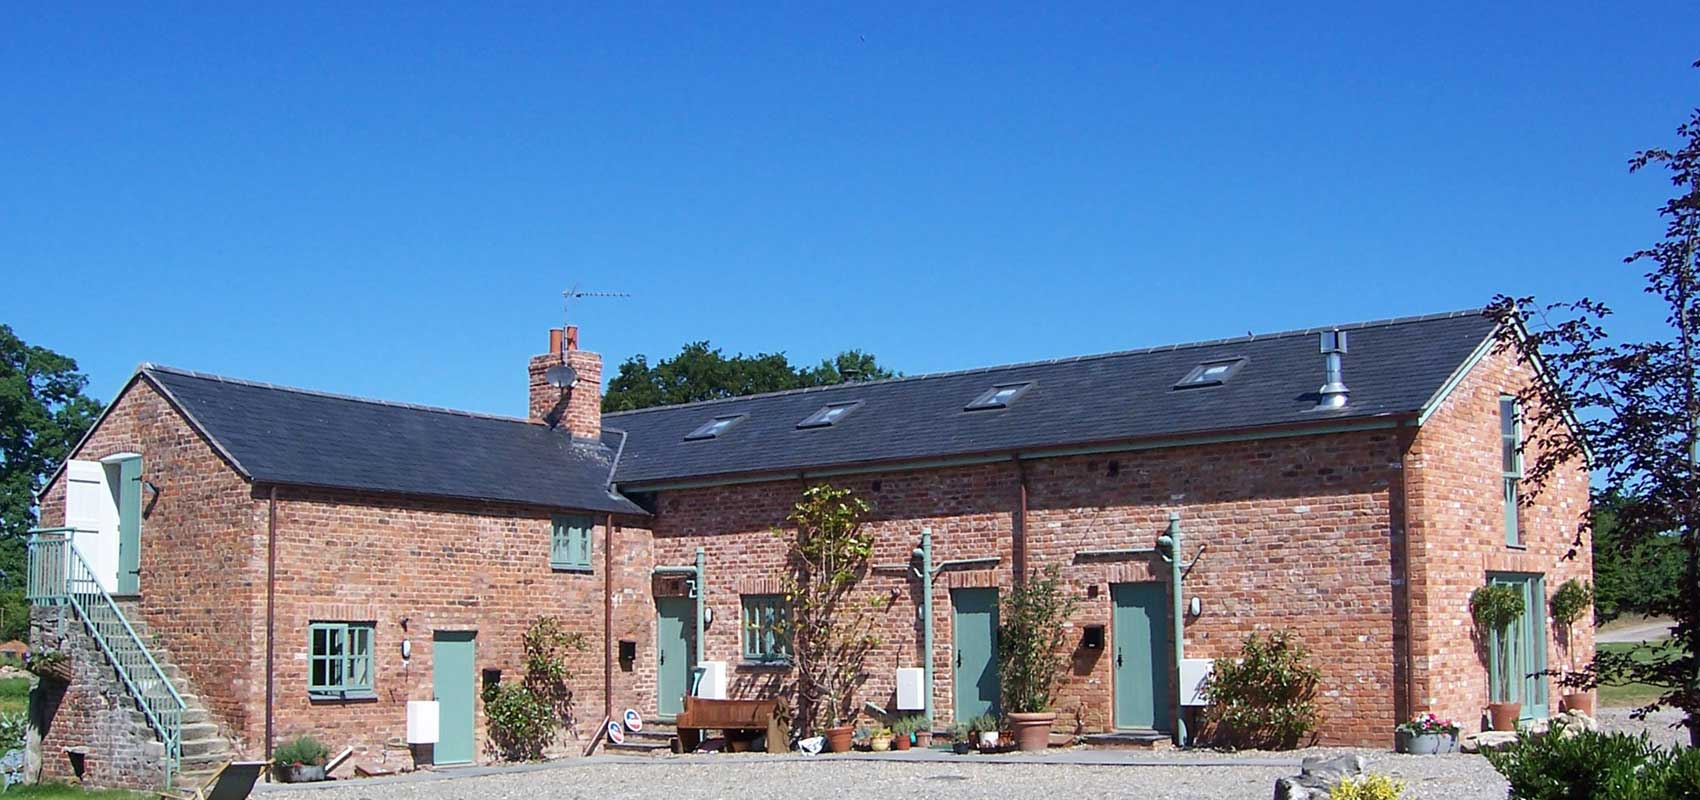 Premium Cottage Self Catering   North Wales   Glan Clwyd Isa   Large